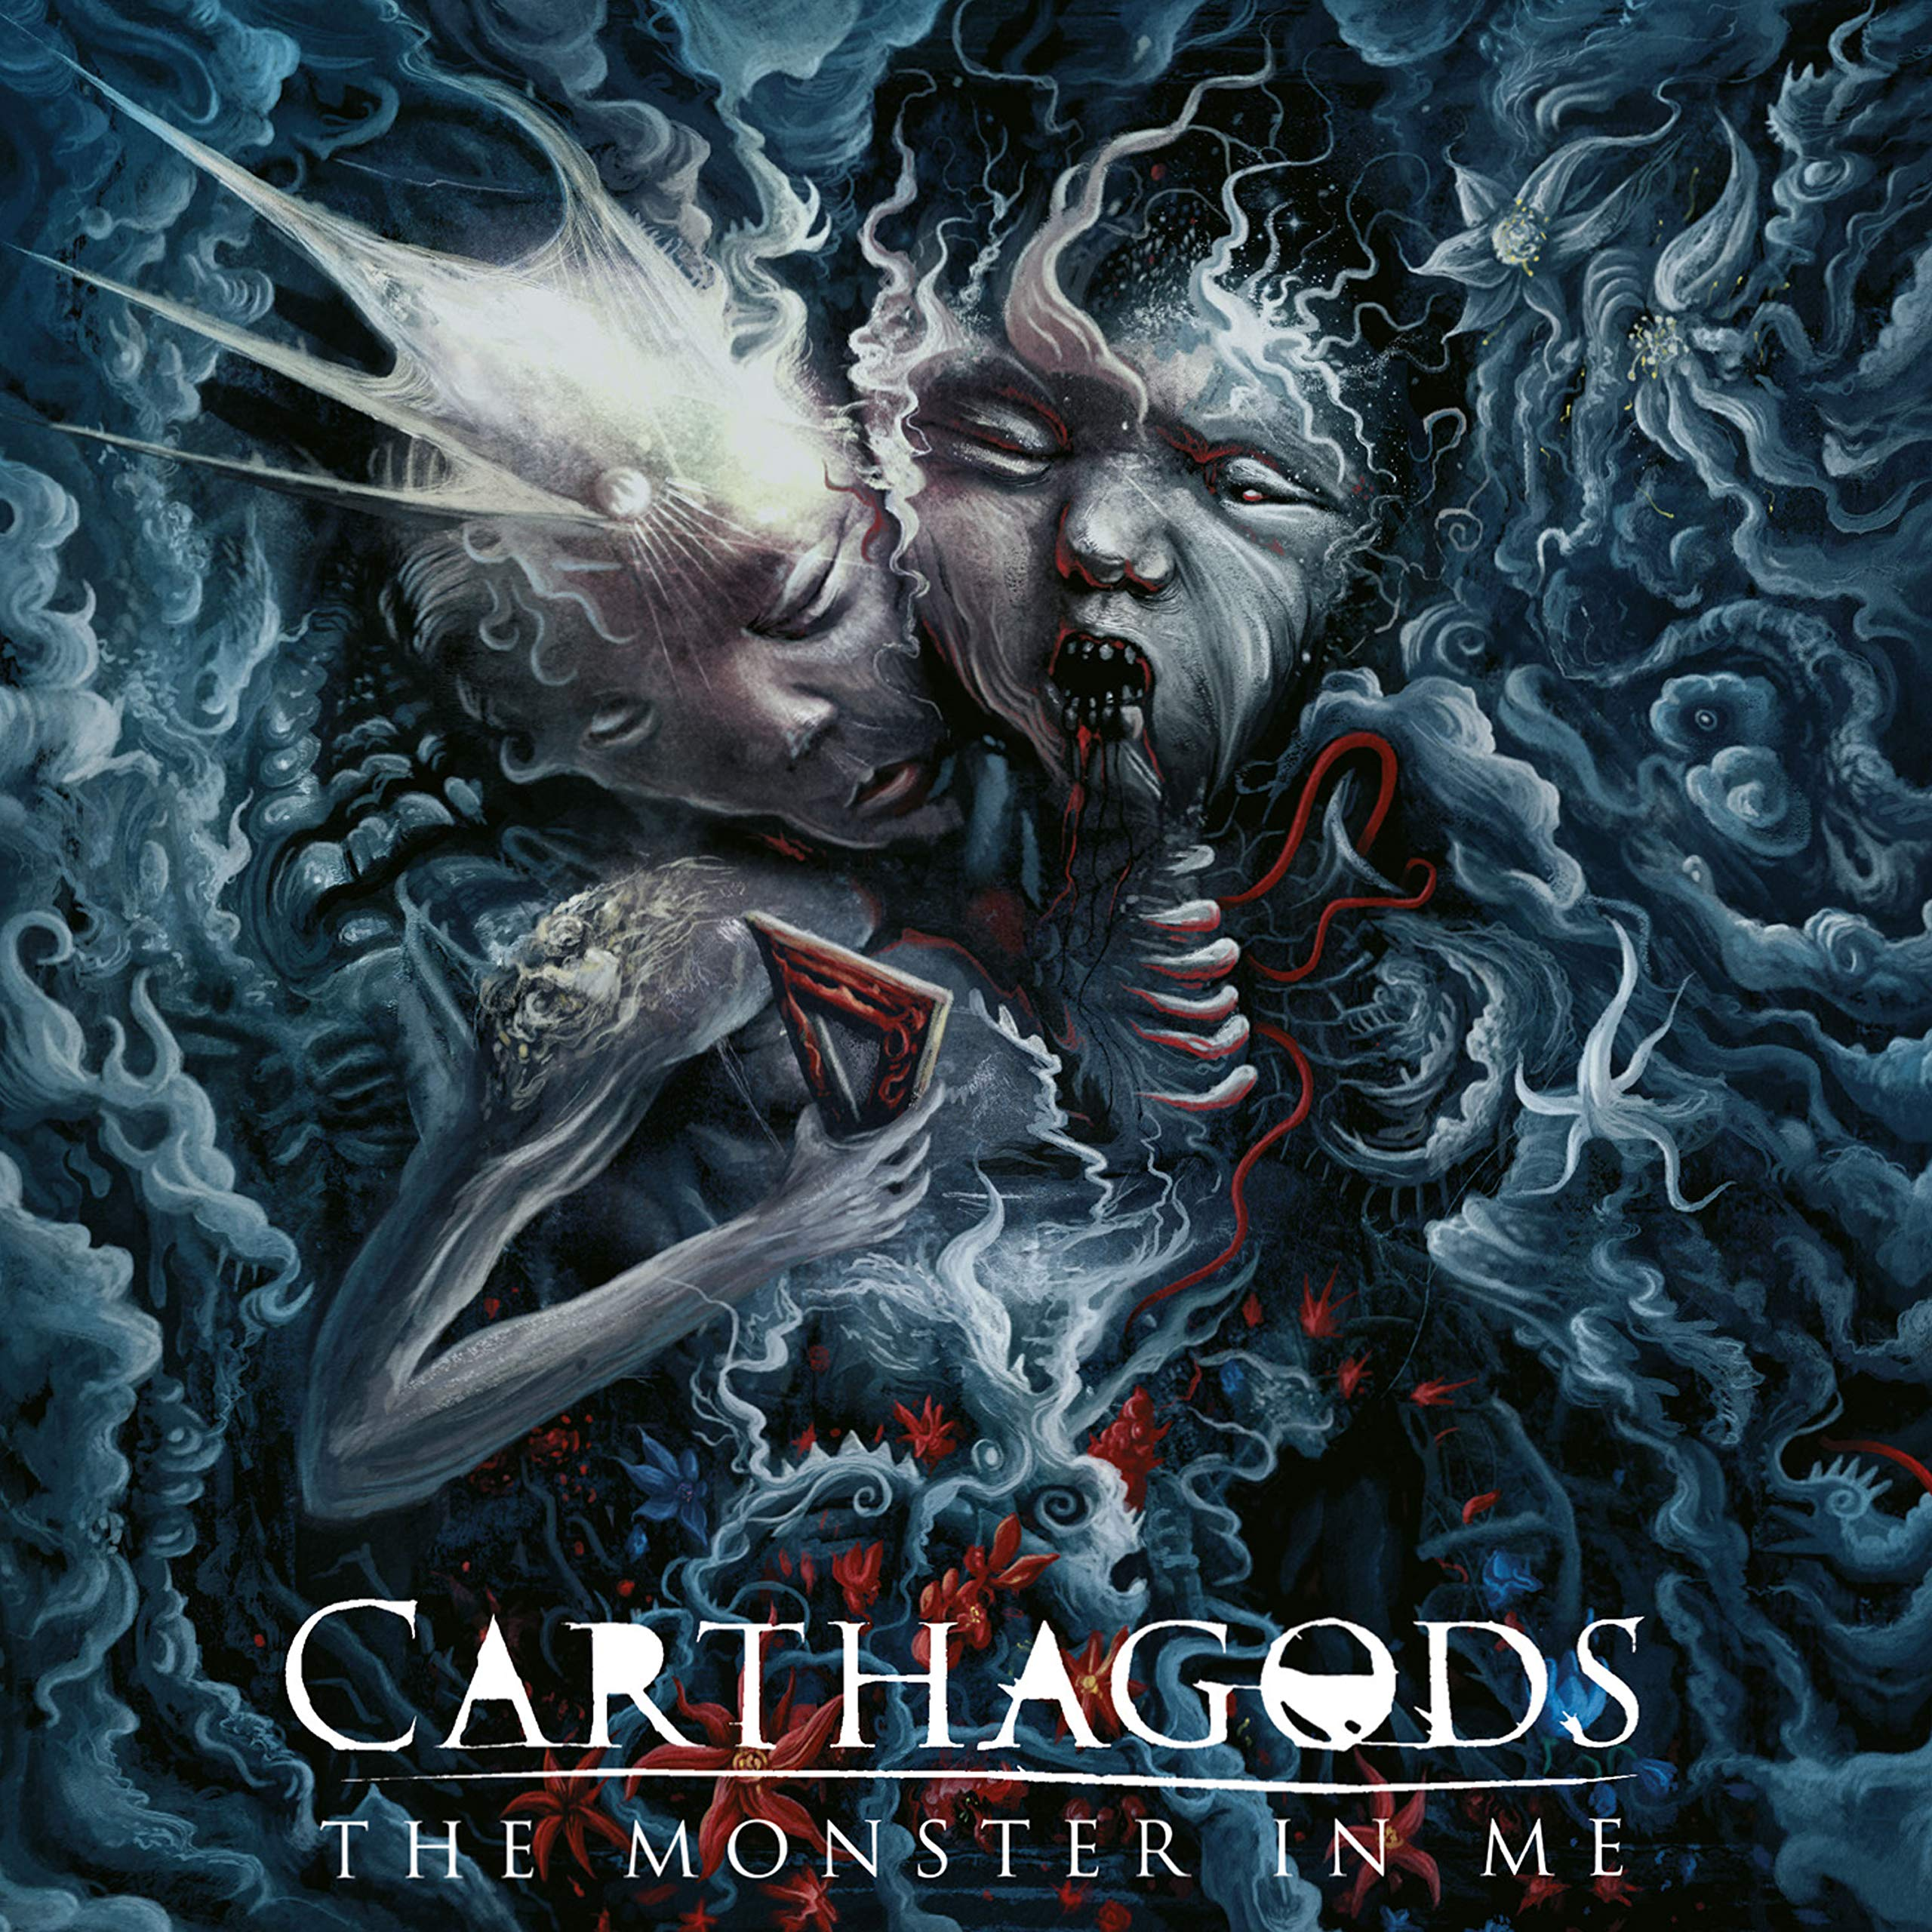 Carthagods – The Monster In Me (2020) [FLAC]